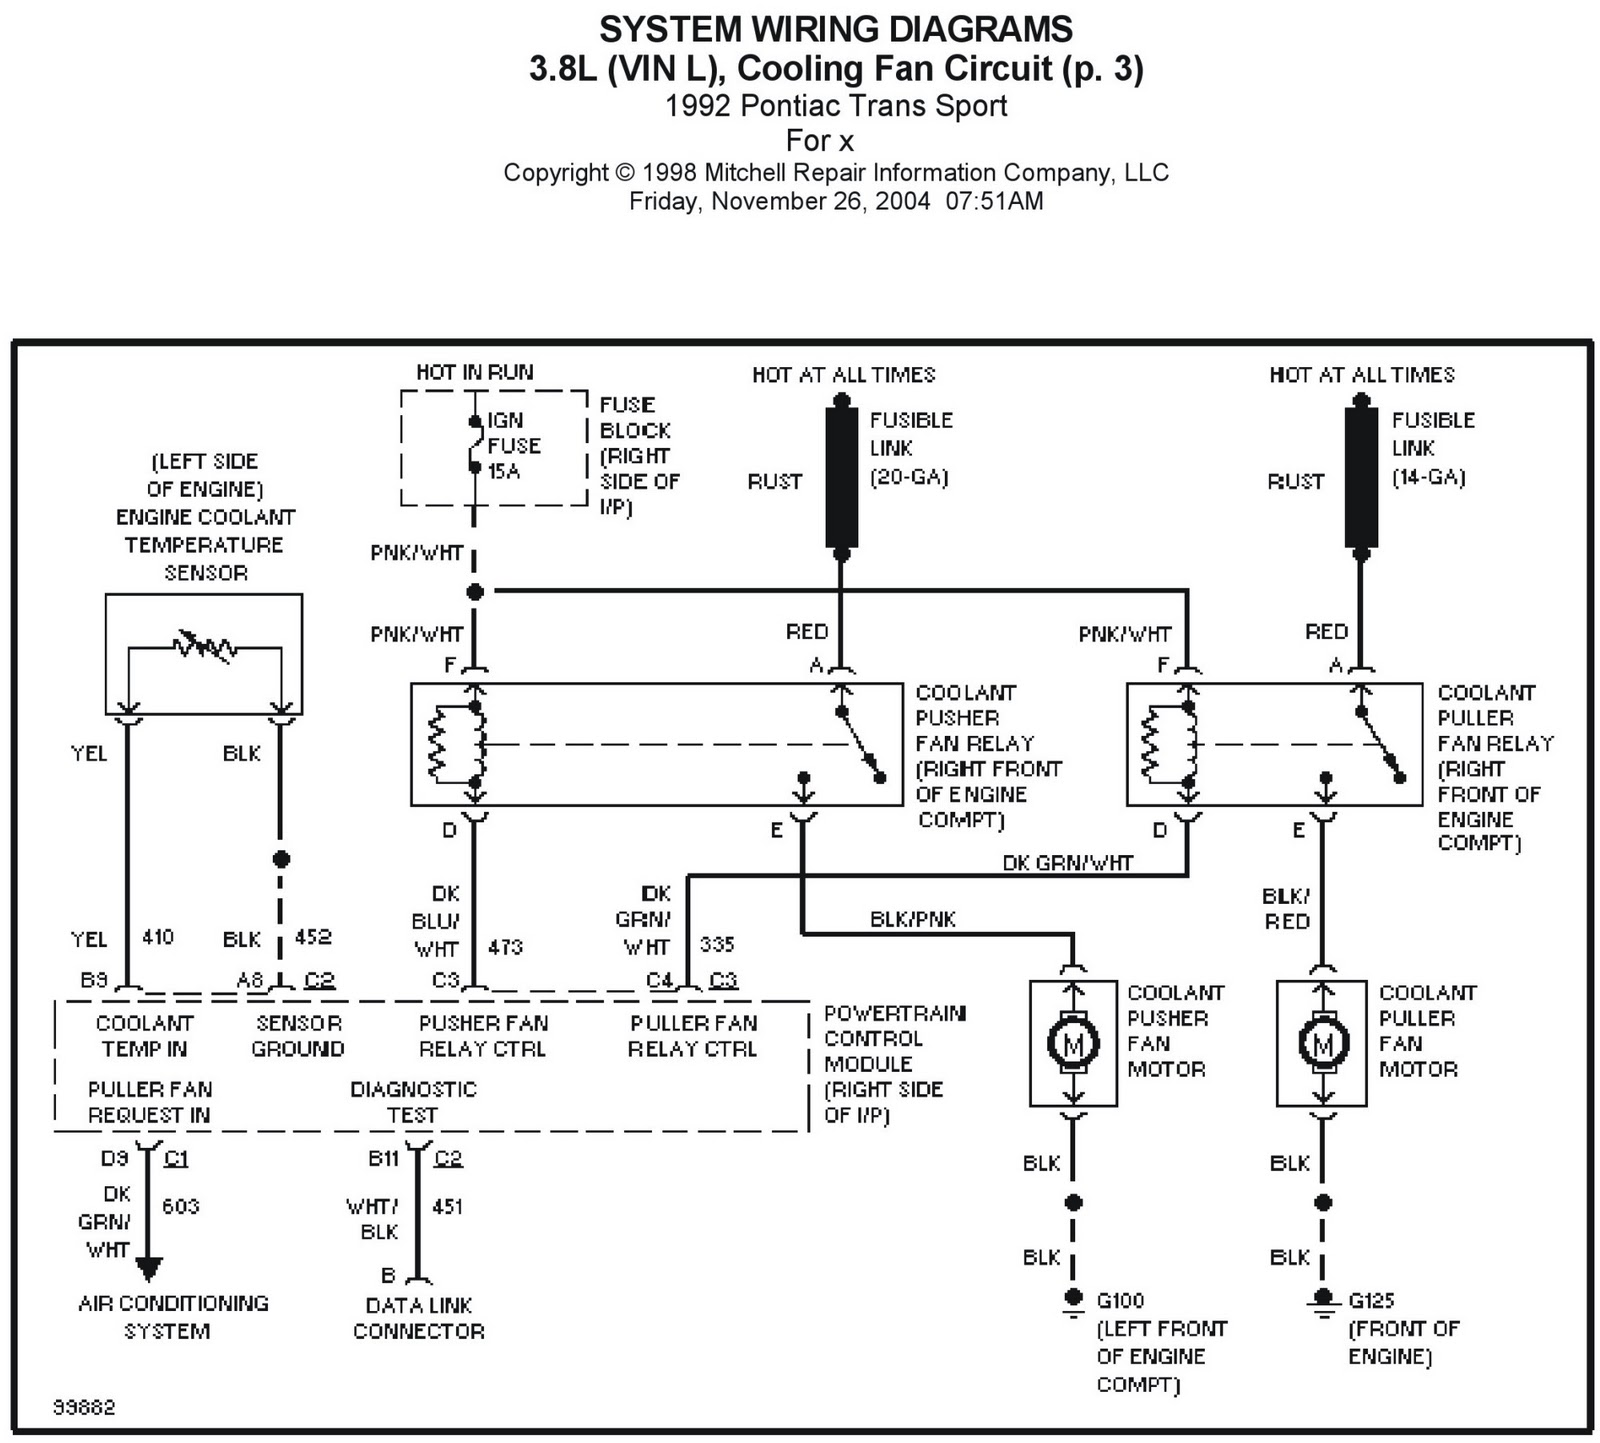 circuit and wiring diagram pontiac trans sport wiring diagram andpontiac trans sport wiring diagram and electrical [ 1600 x 1443 Pixel ]